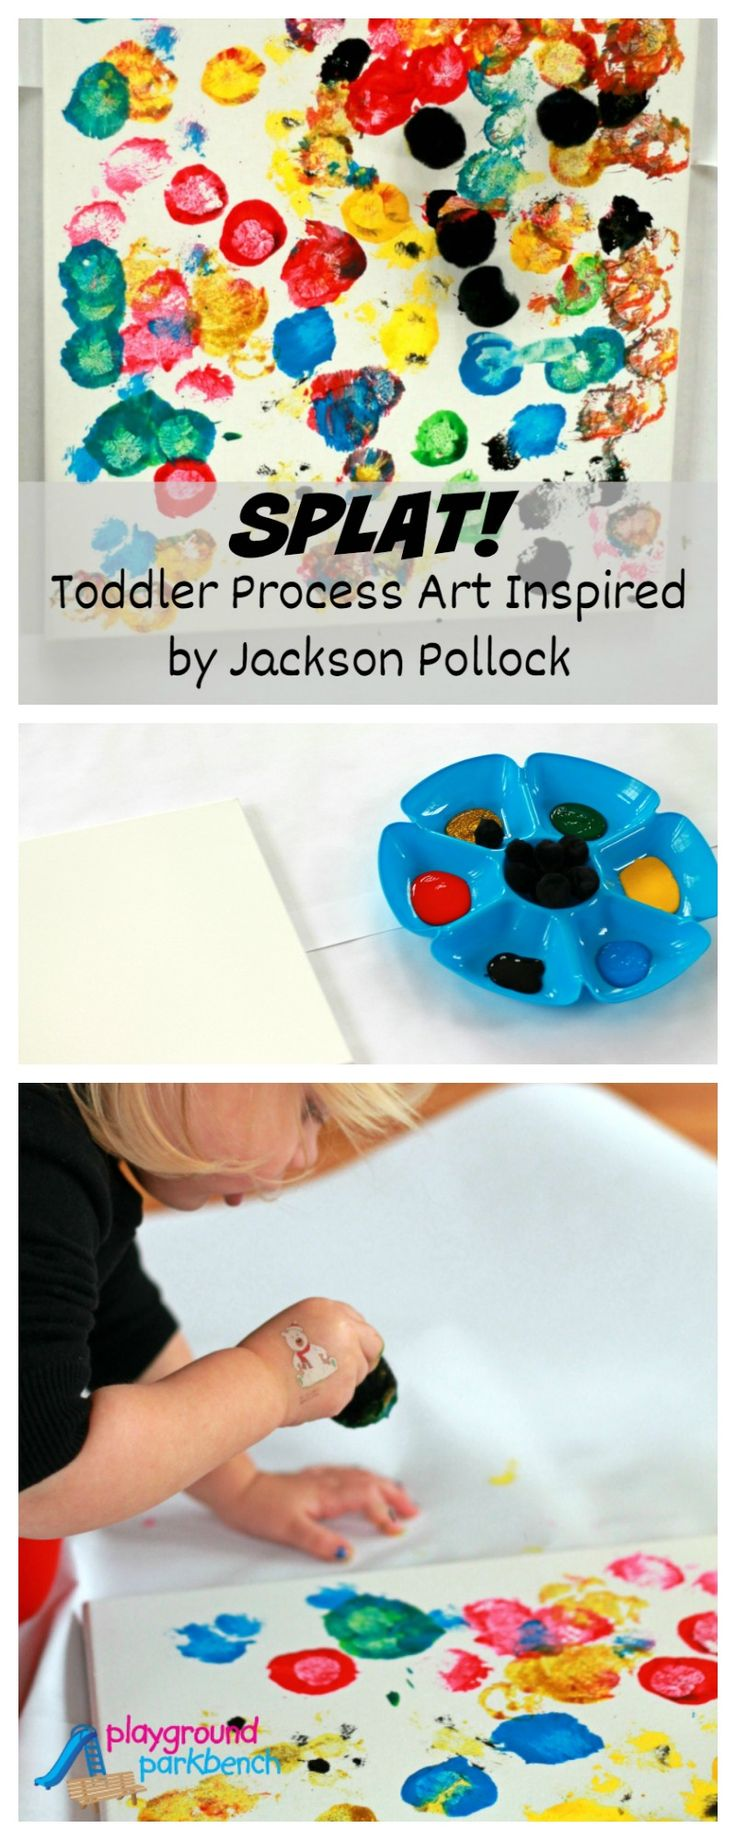 Crafts for one year olds - 25 Best Ideas About Two Year Old Crafts On Pinterest Toddler Activities Toddler Activities For Daycare And Activities For Toddlers